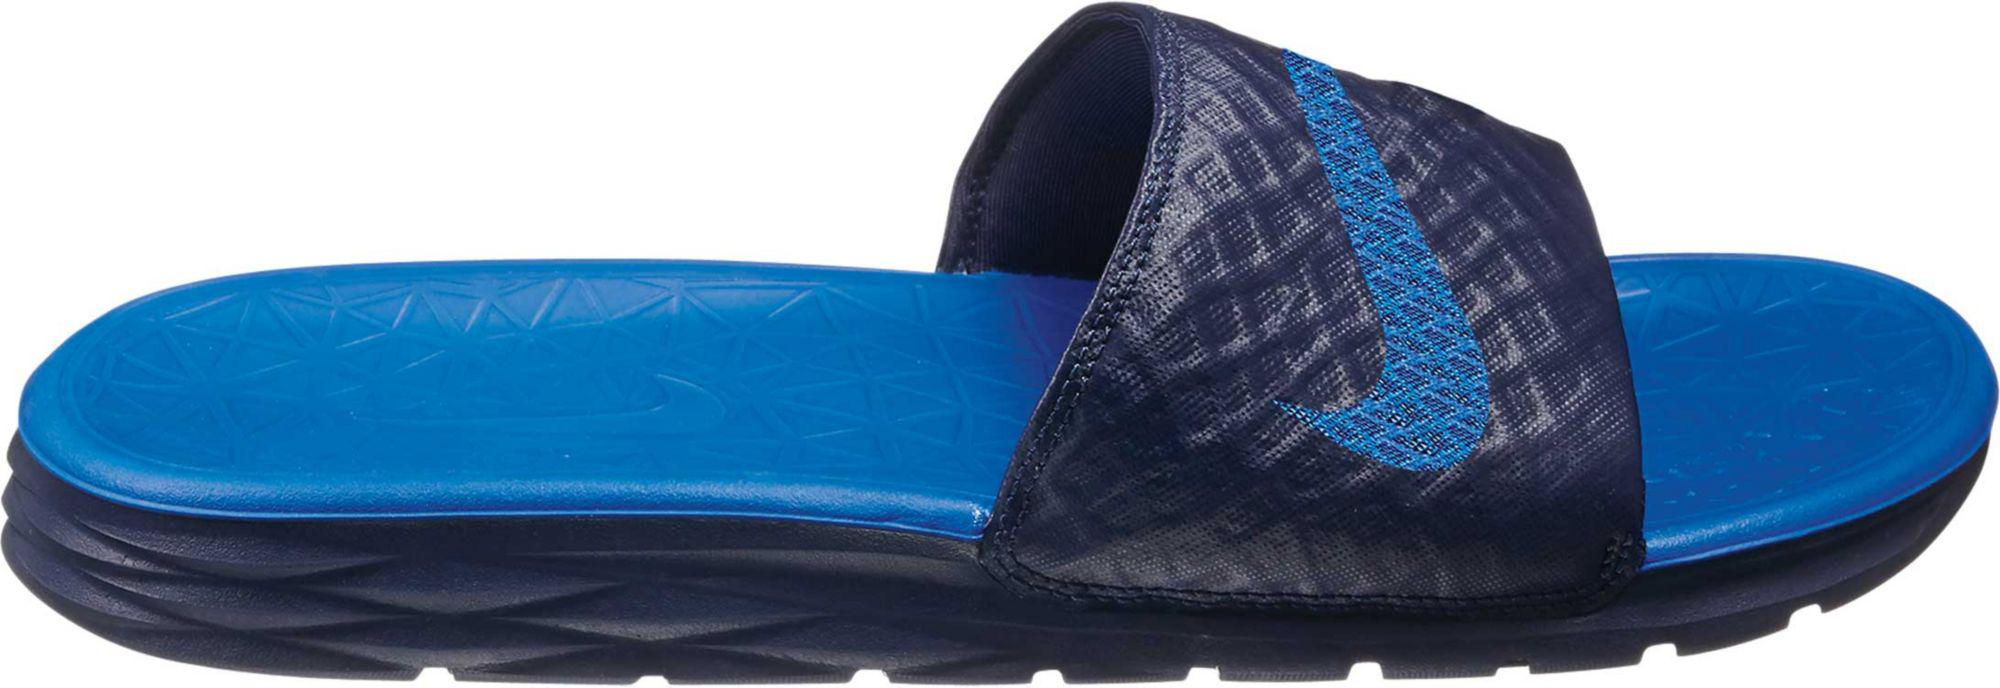 99d0c008175 Lyst - Nike Enassi Solarsoft 2 Slides in Blue for Men